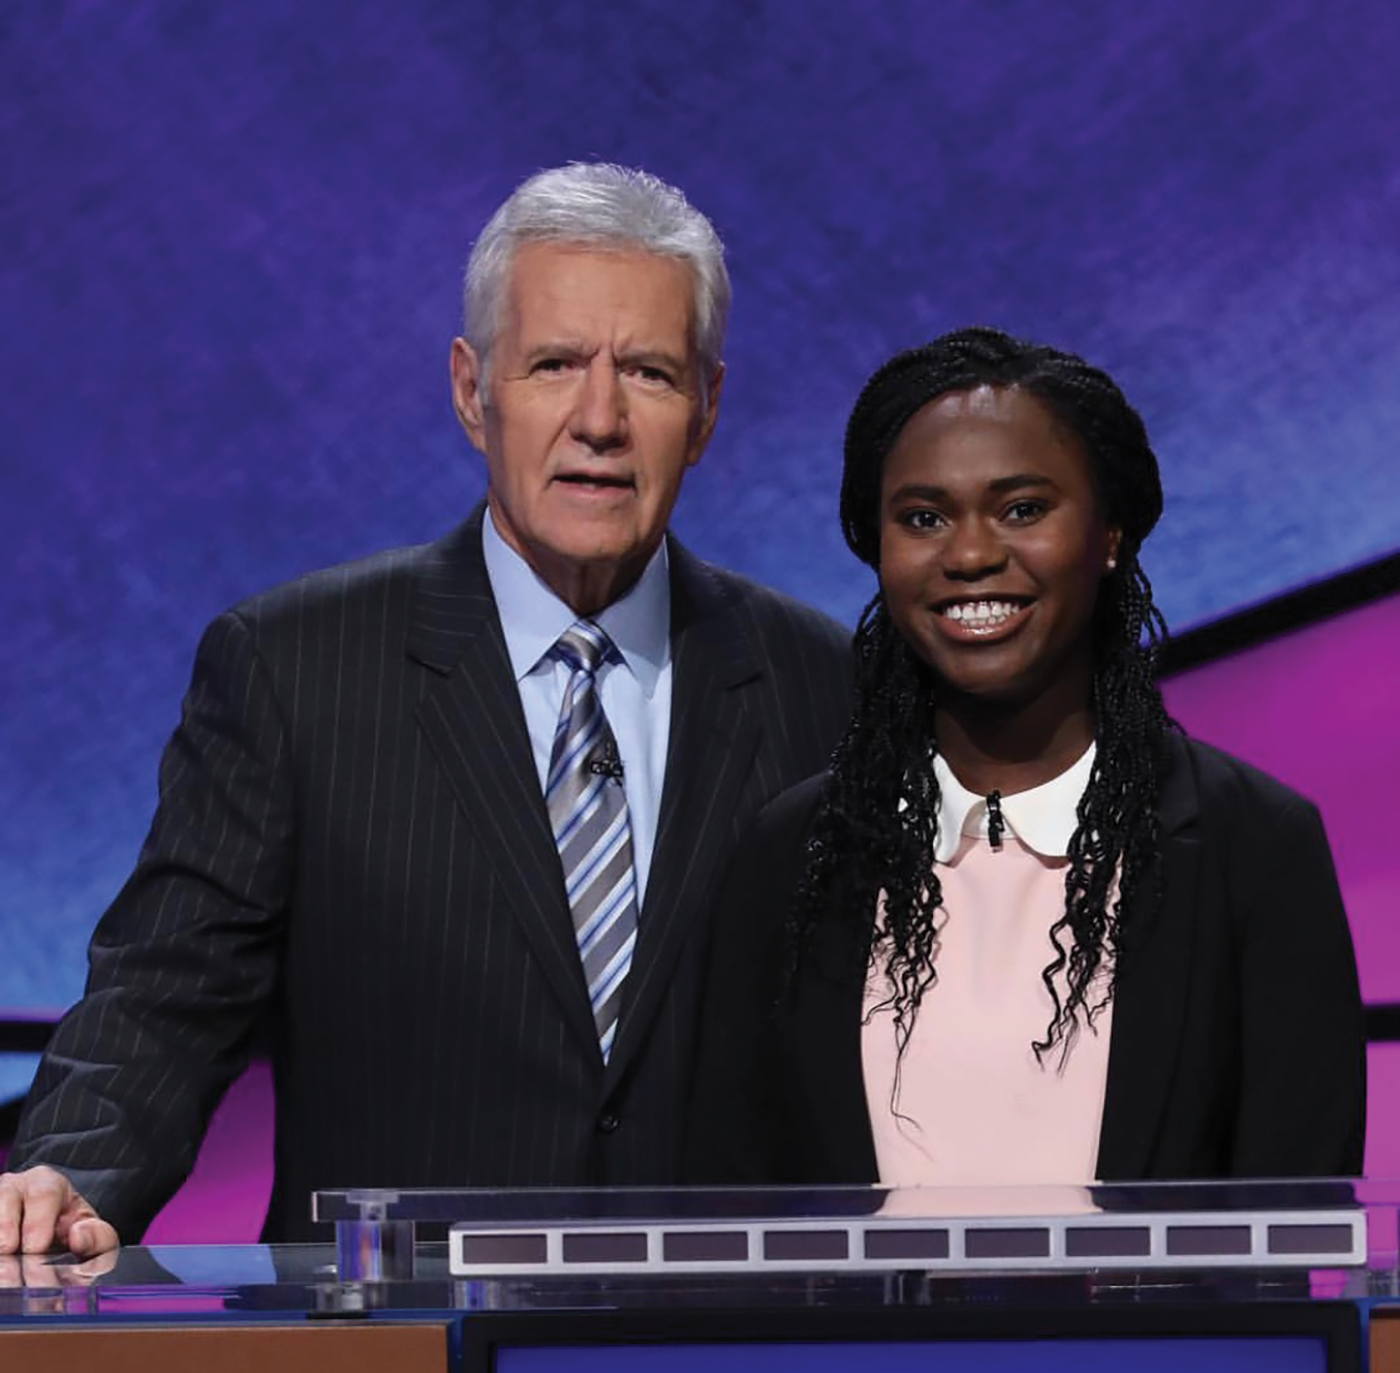 Jeopardy competitor and senior Audrey Satchivi poses with the show's host, Alex Trebek. He has been a host for over 25 years.